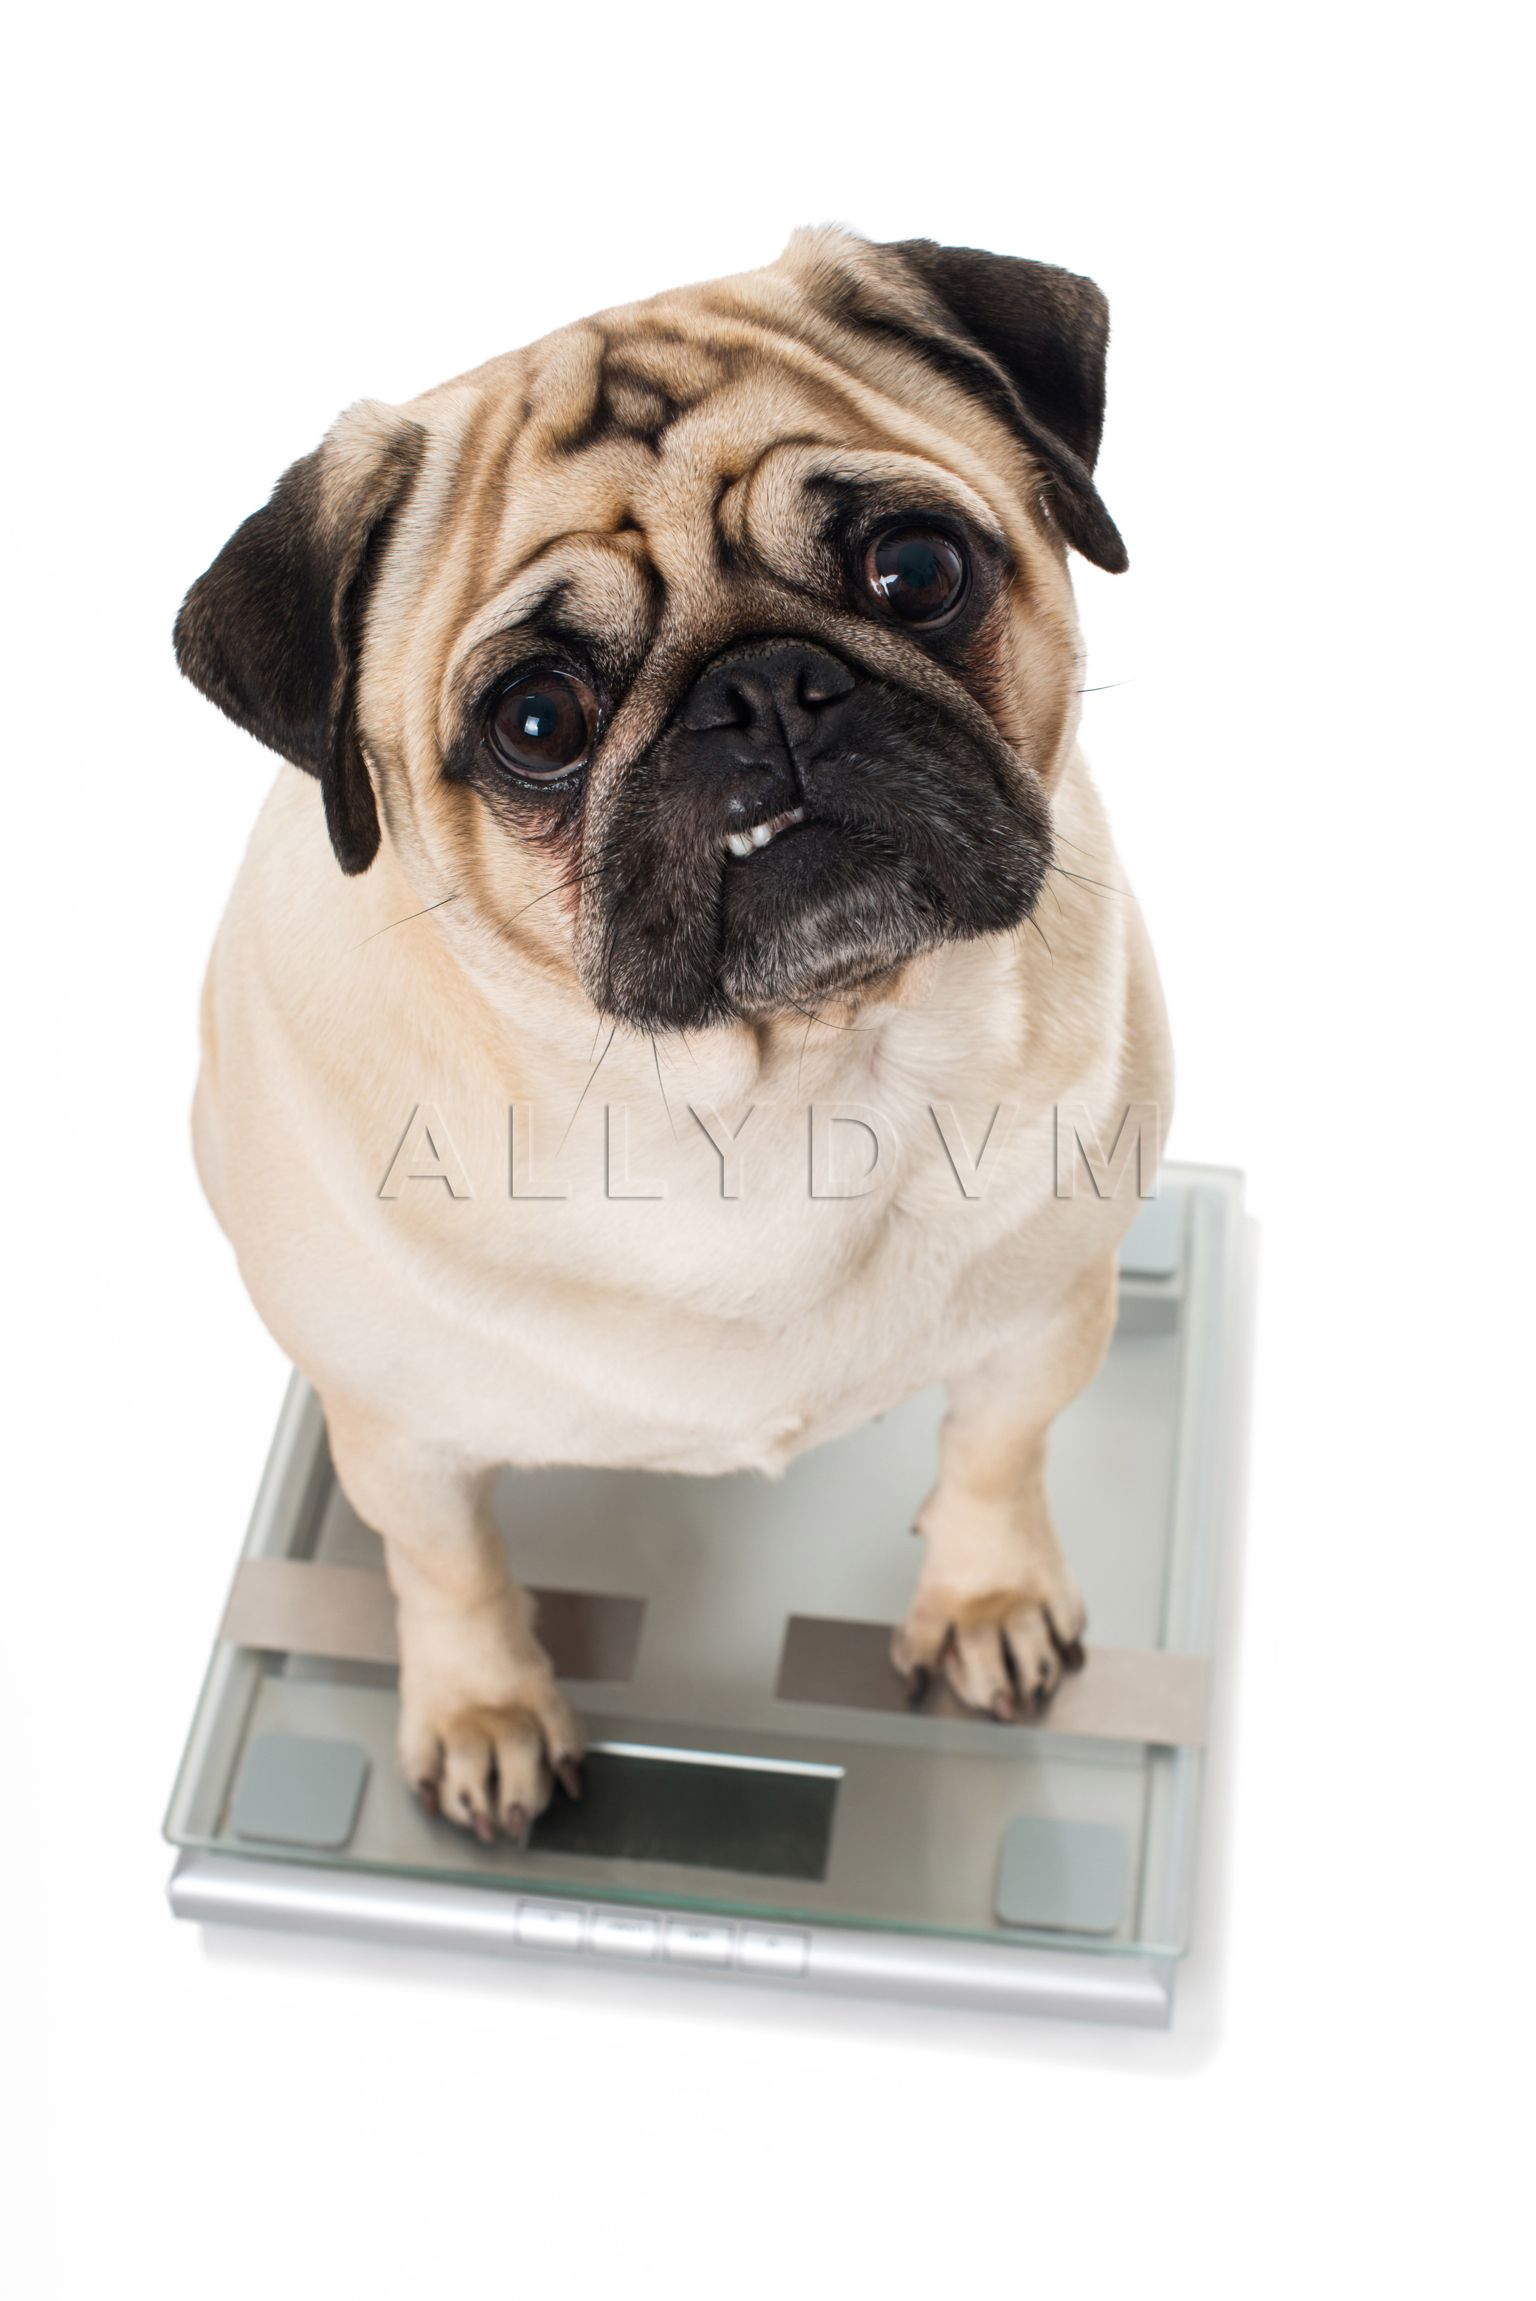 Puppies Dogs Image By Allydvm Medication For Dogs Dogs Dog